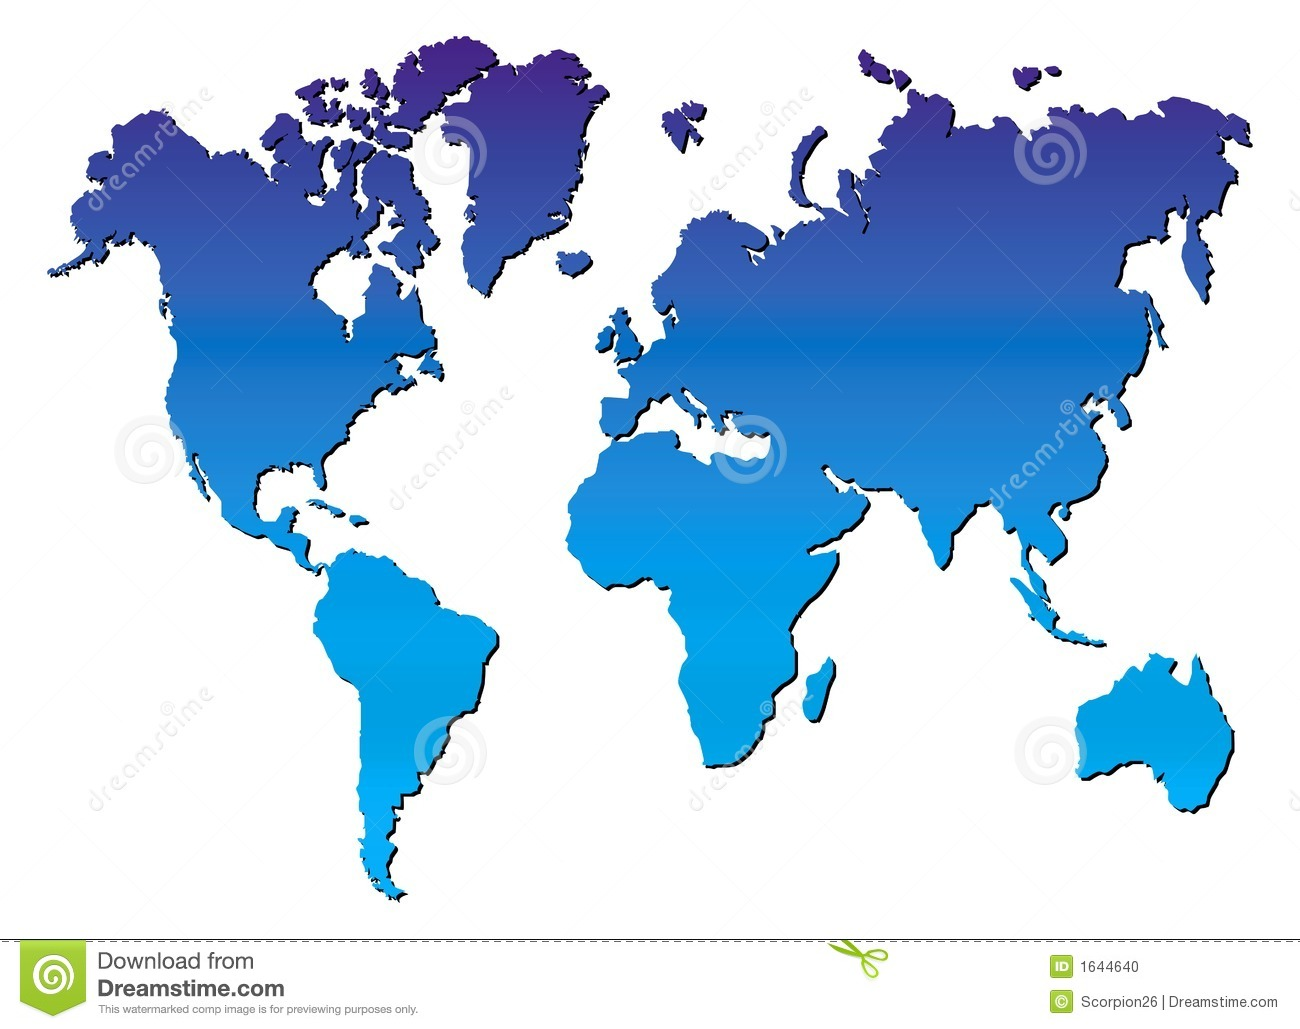 Extra together with Stock Photo Blue World Map Vector Image1644640 likewise World Map Painting Watercolor Colorful Abstract Artwork Wallpaper further Zones moreover Lizenzfreie Stockfotos Europa Karte Image3035418. on mapa mundi 3d